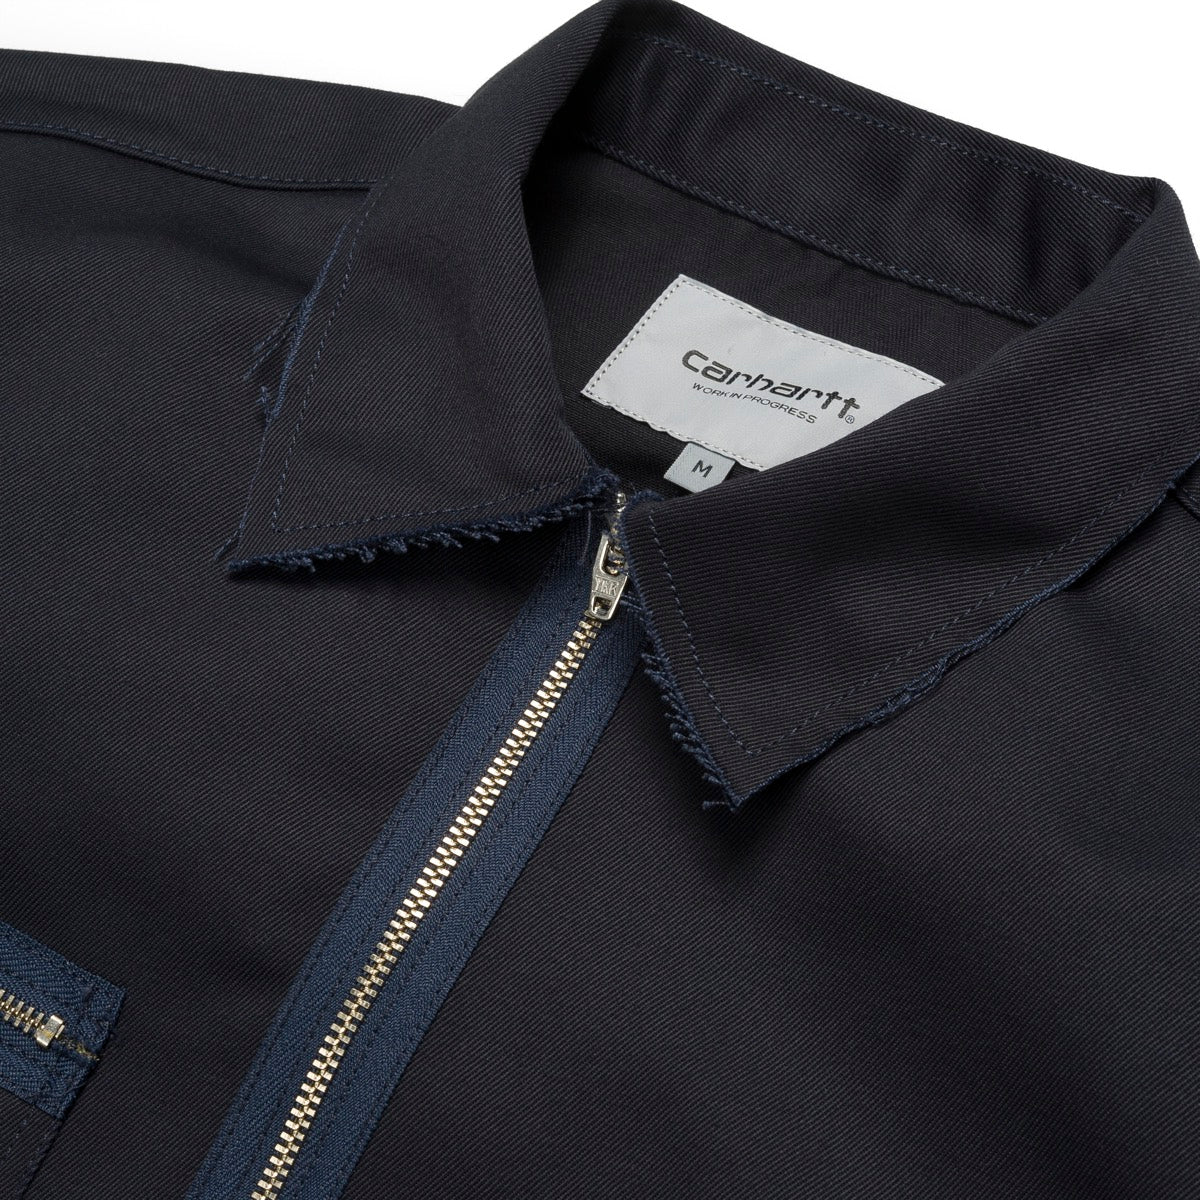 Carhartt WIP Minute Man Zip Shirt x Slam Jam